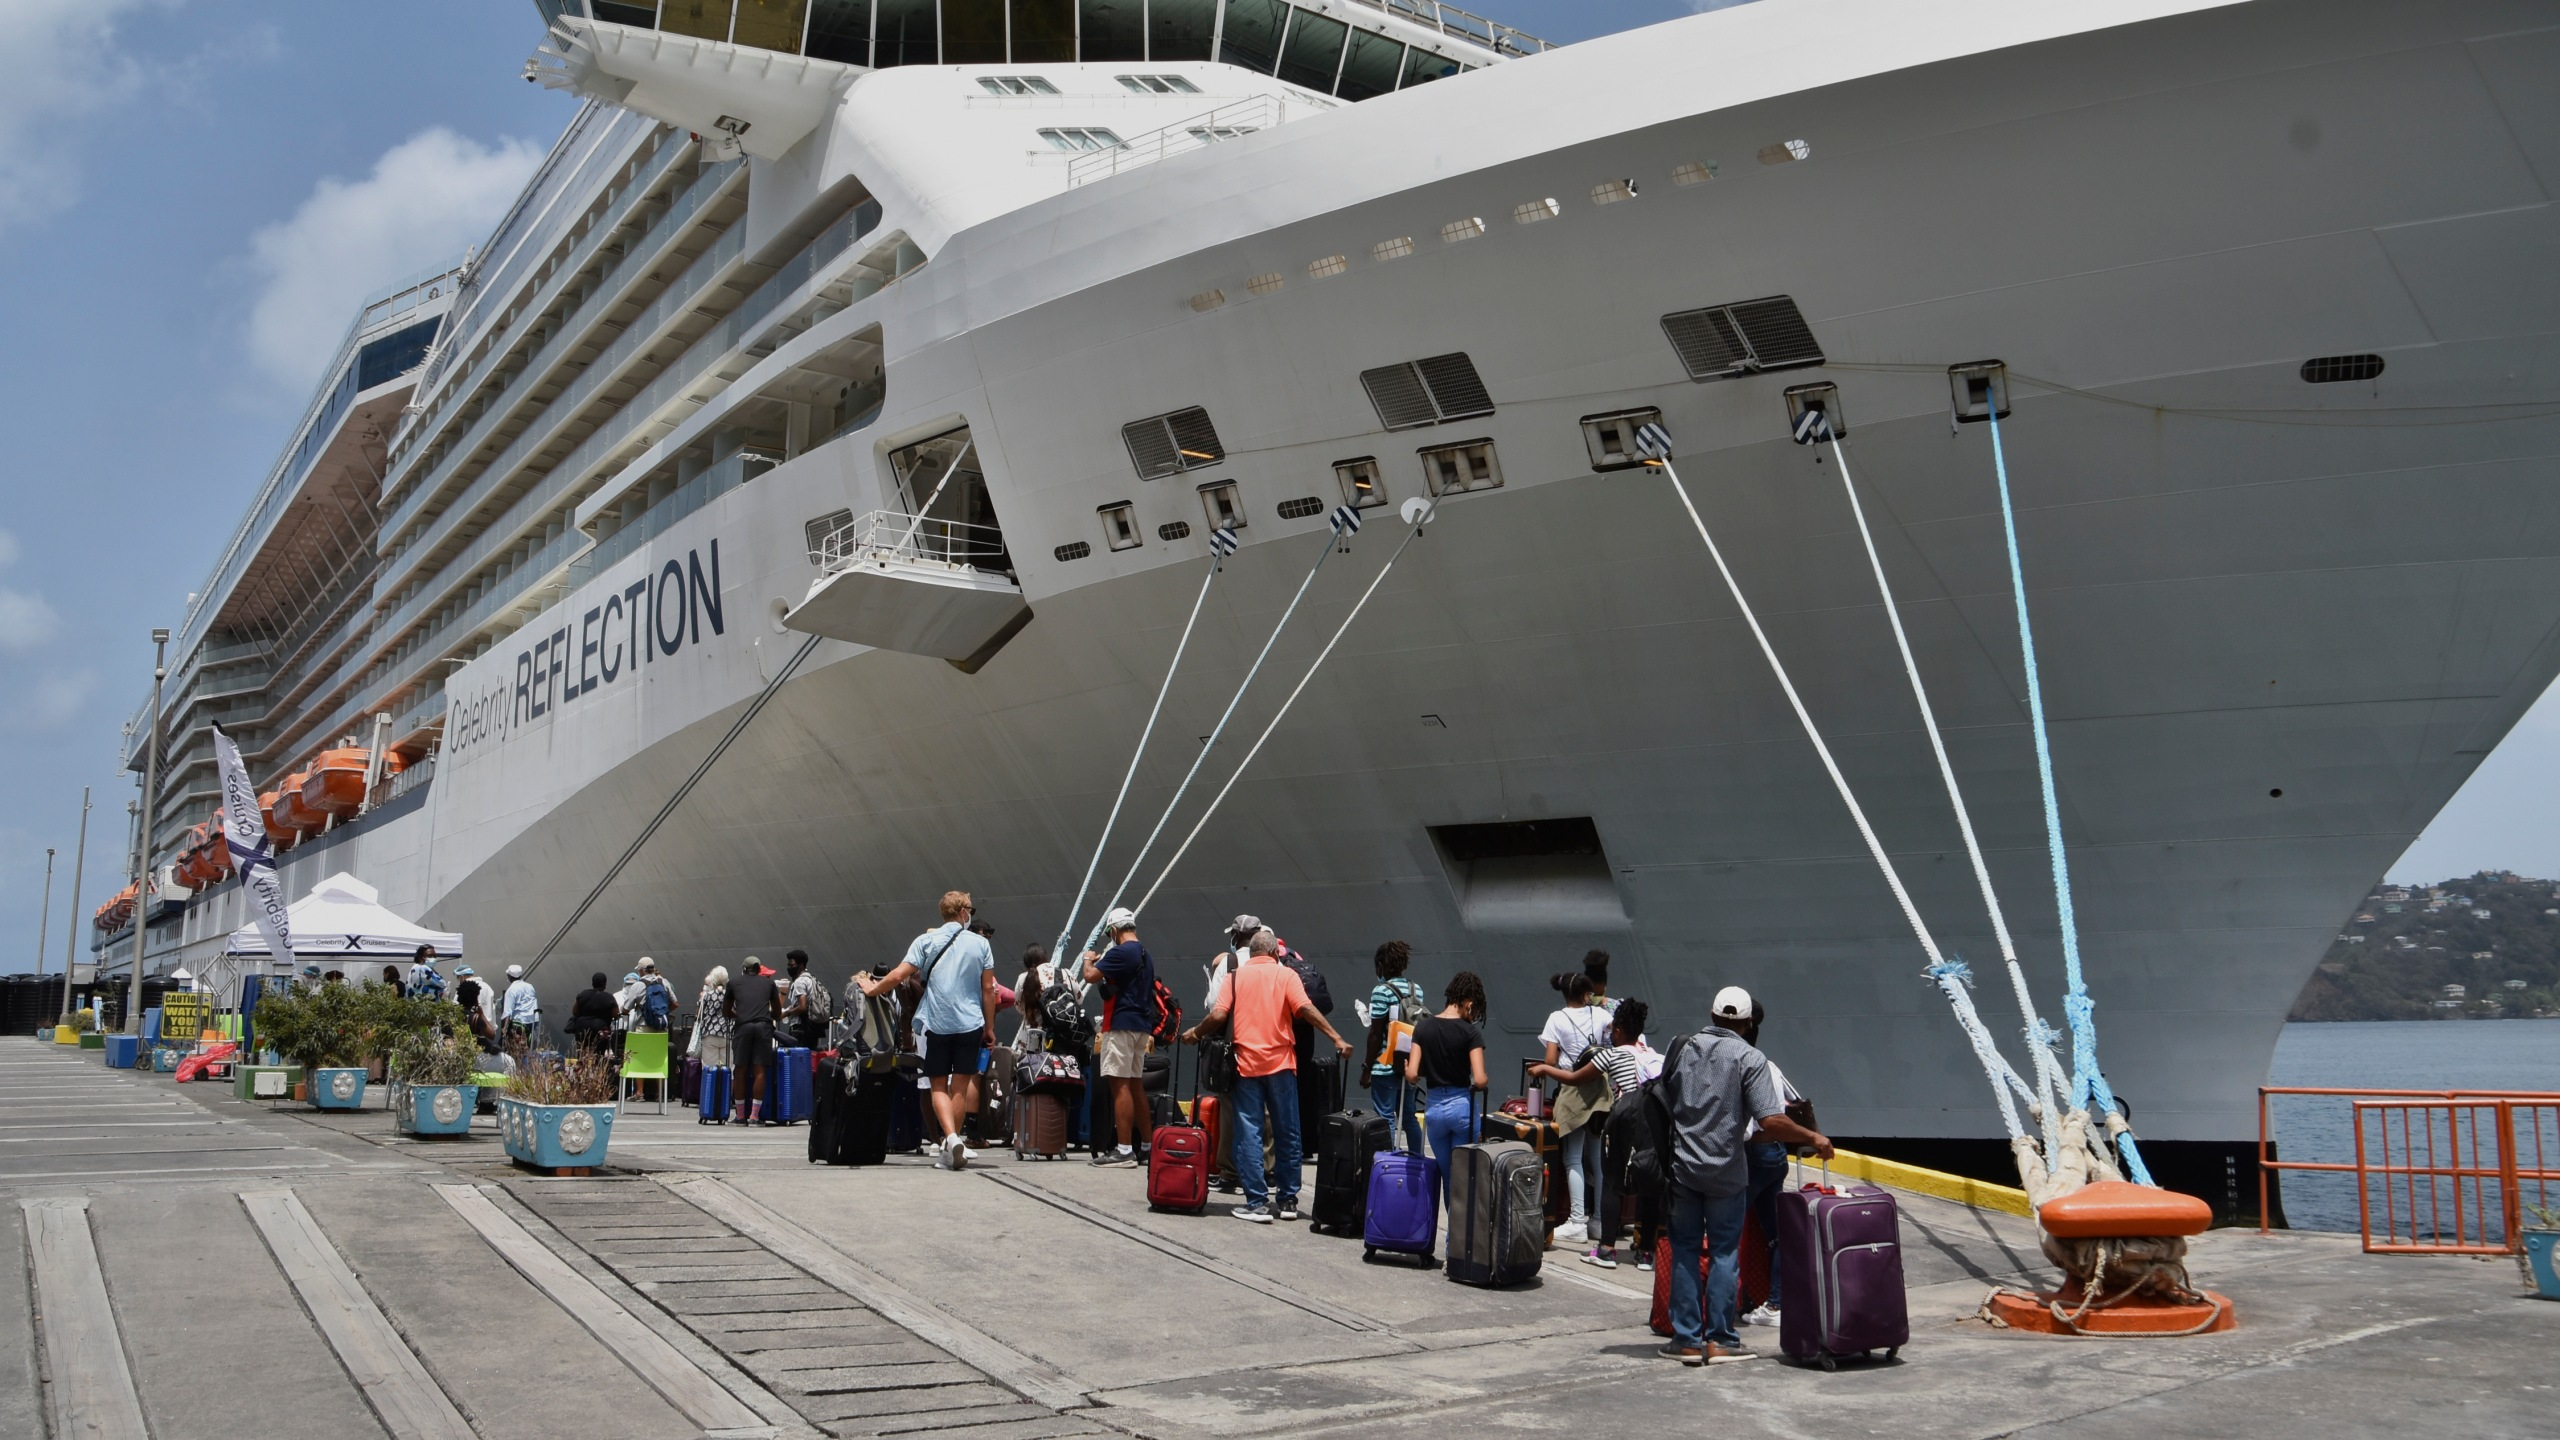 British, Canadian and U.S. nationals line up alongside the Royal Caribbean cruise ship Reflection to be evacuated free of charge, in Kingstown on the eastern Caribbean island of St. Vincent, Friday, April 16, 2021. La Soufriere volcano has shot out another explosive burst of gas and ash Friday morning as the cruise ship arrived to evacuate some of the foreigners who had been stuck on a St. Vincent island by a week of violent eruptions. (AP Photo/Orvil Samuel)